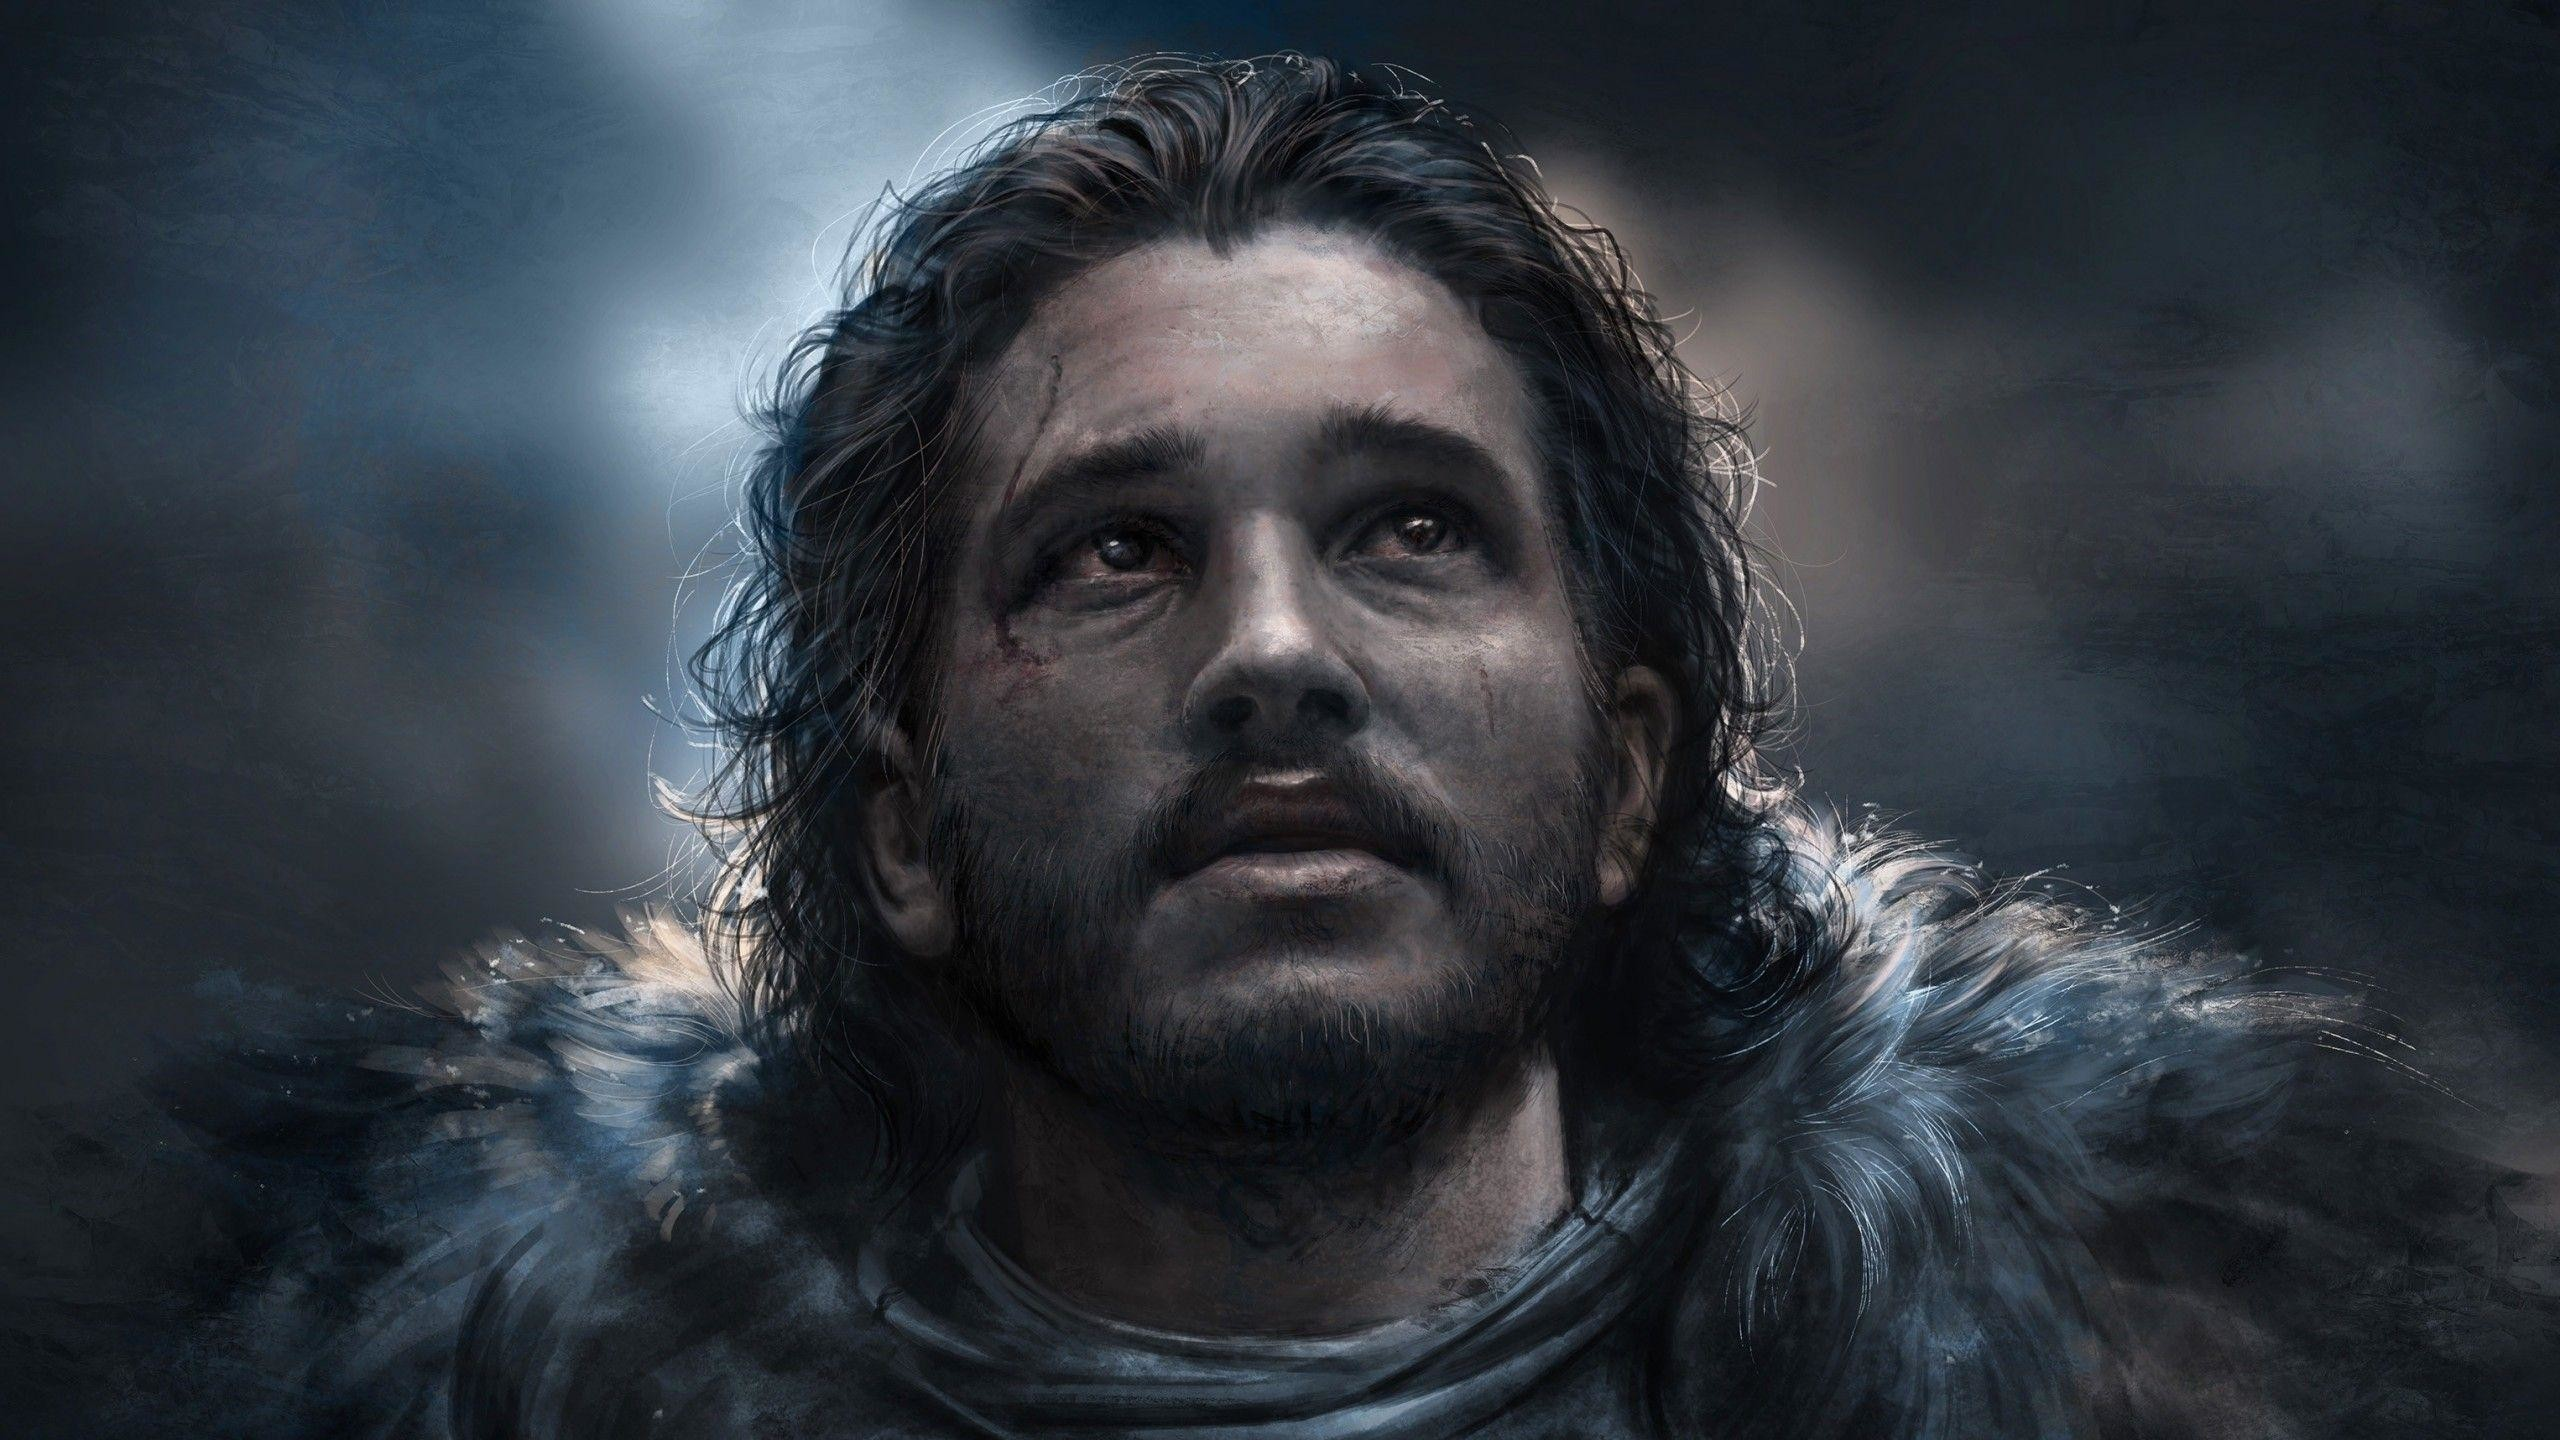 Download Jon Snow, Painting, Game Of Thrones Wallpapers .